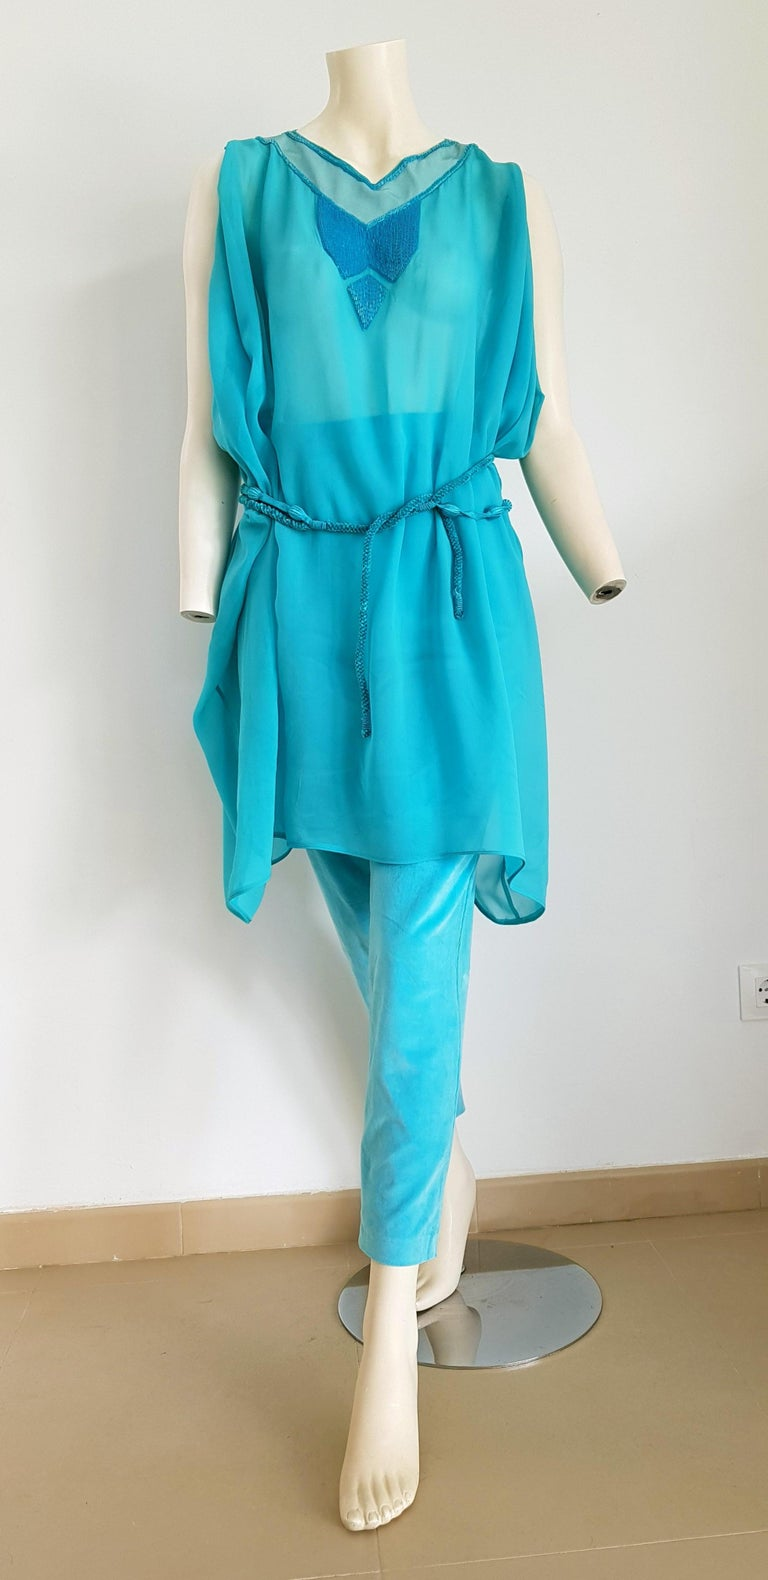 Gianni VERSACE Haute Couture single piece unique design silk chiffon tunic and silk velvet pants two belts turquoise ensemble - Unworn, New  SIZE: equivalent to about Small / Medium, please review approx measurements as follows in cm.  TUNIC: lenght